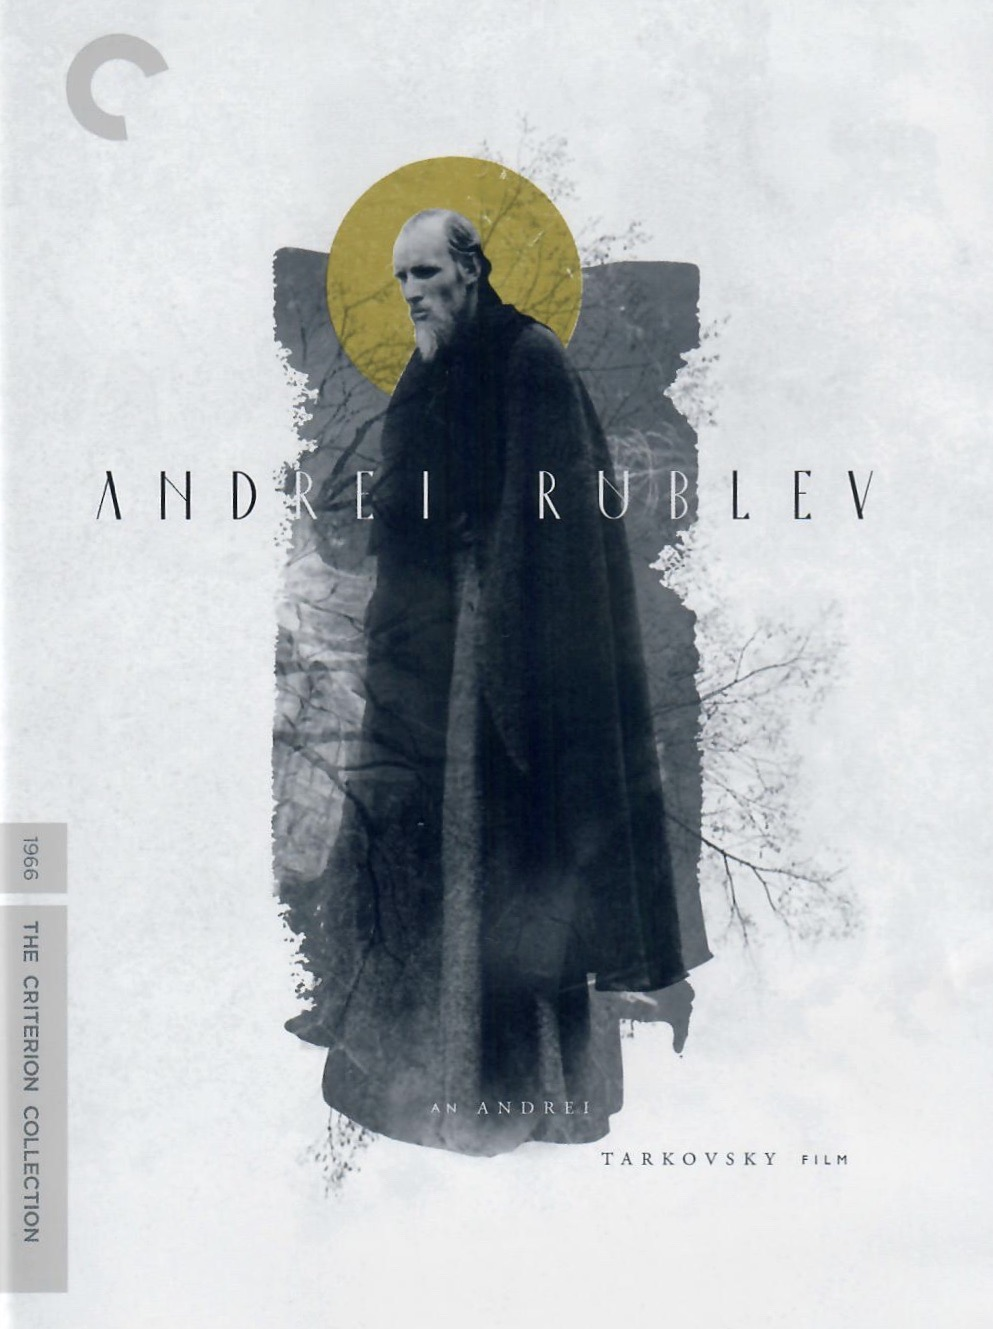 Andrei Rublev DVD Cover.jpeg